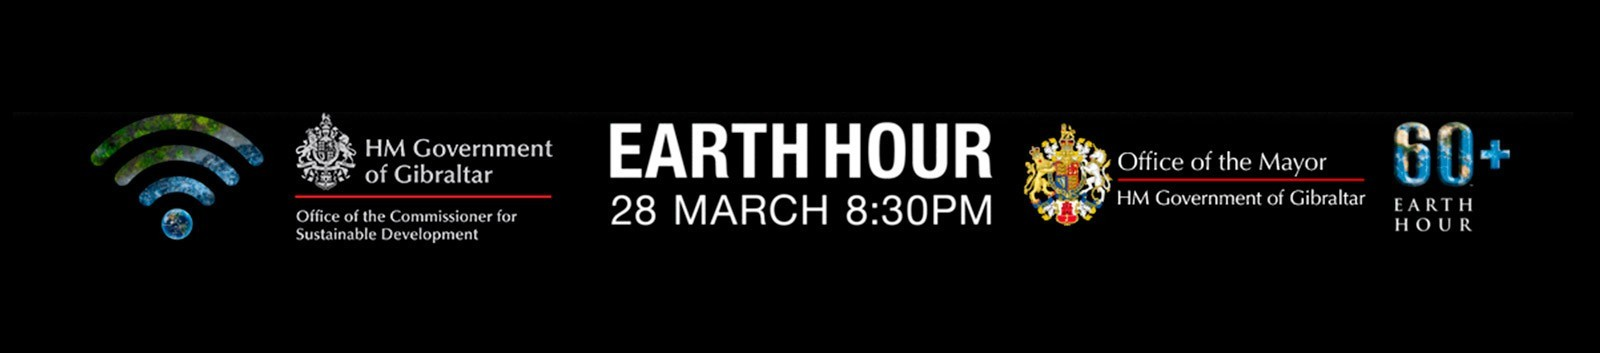 Earth Hour 2020 Image